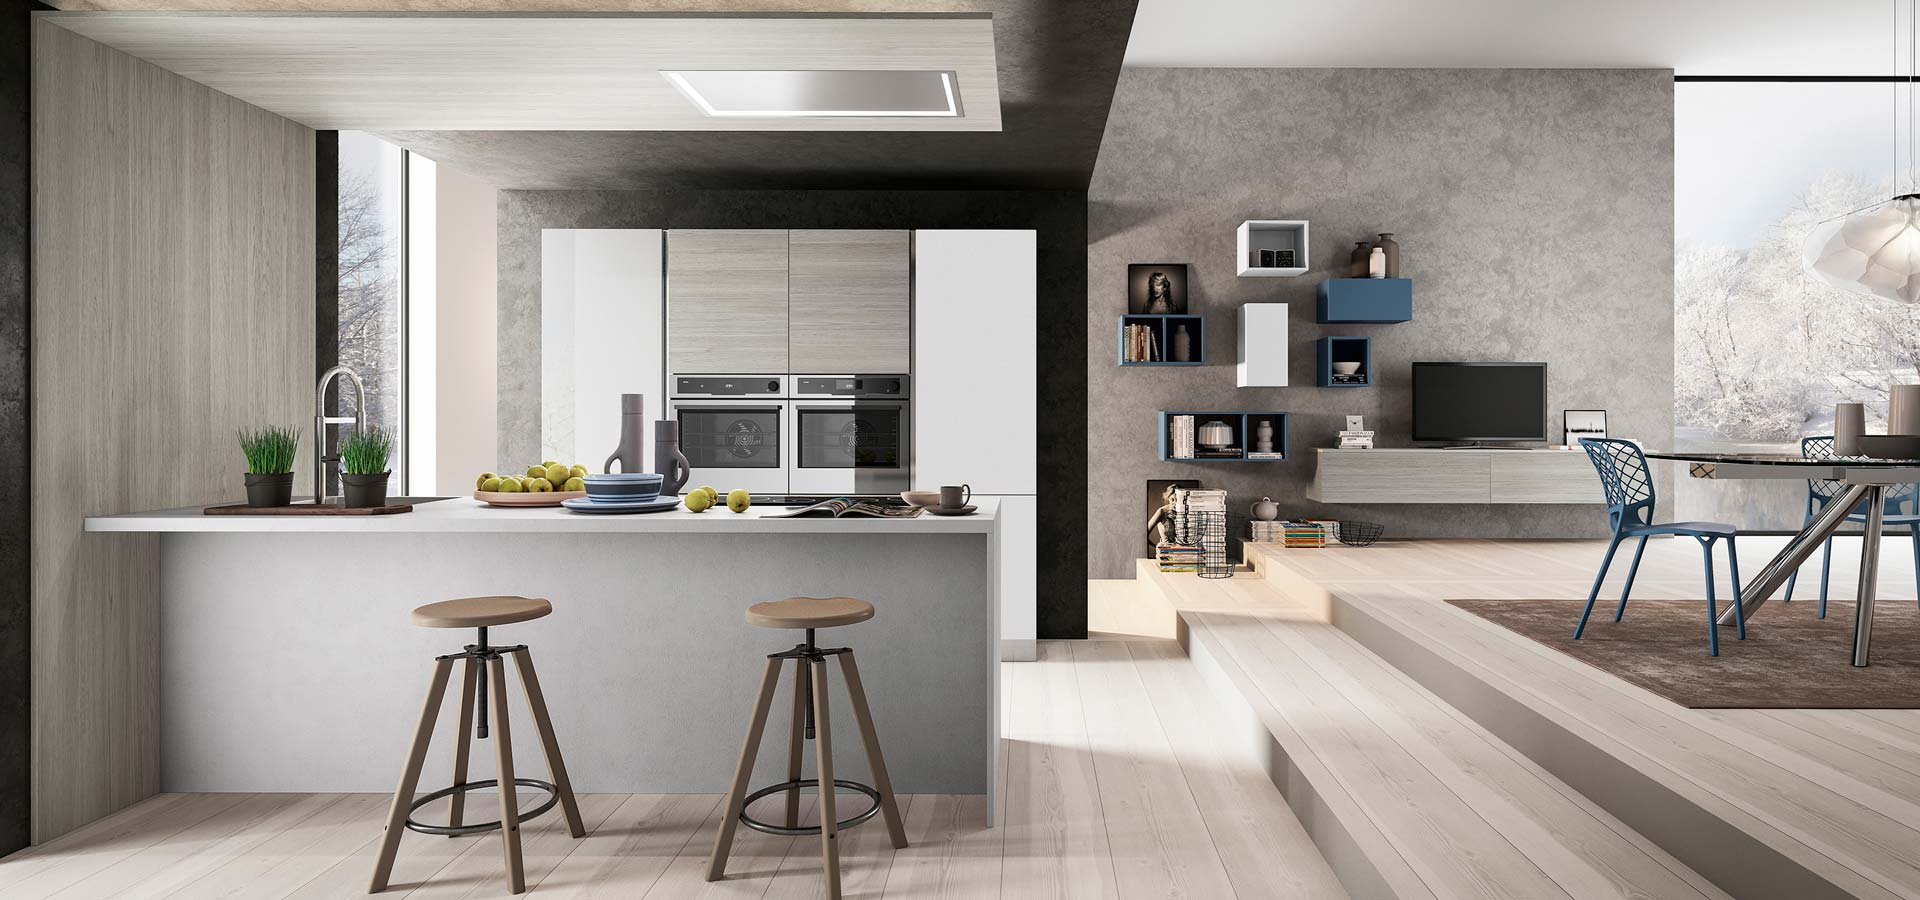 Cloe - Buy Arredo3 kitchens online from Abitalia South Coast